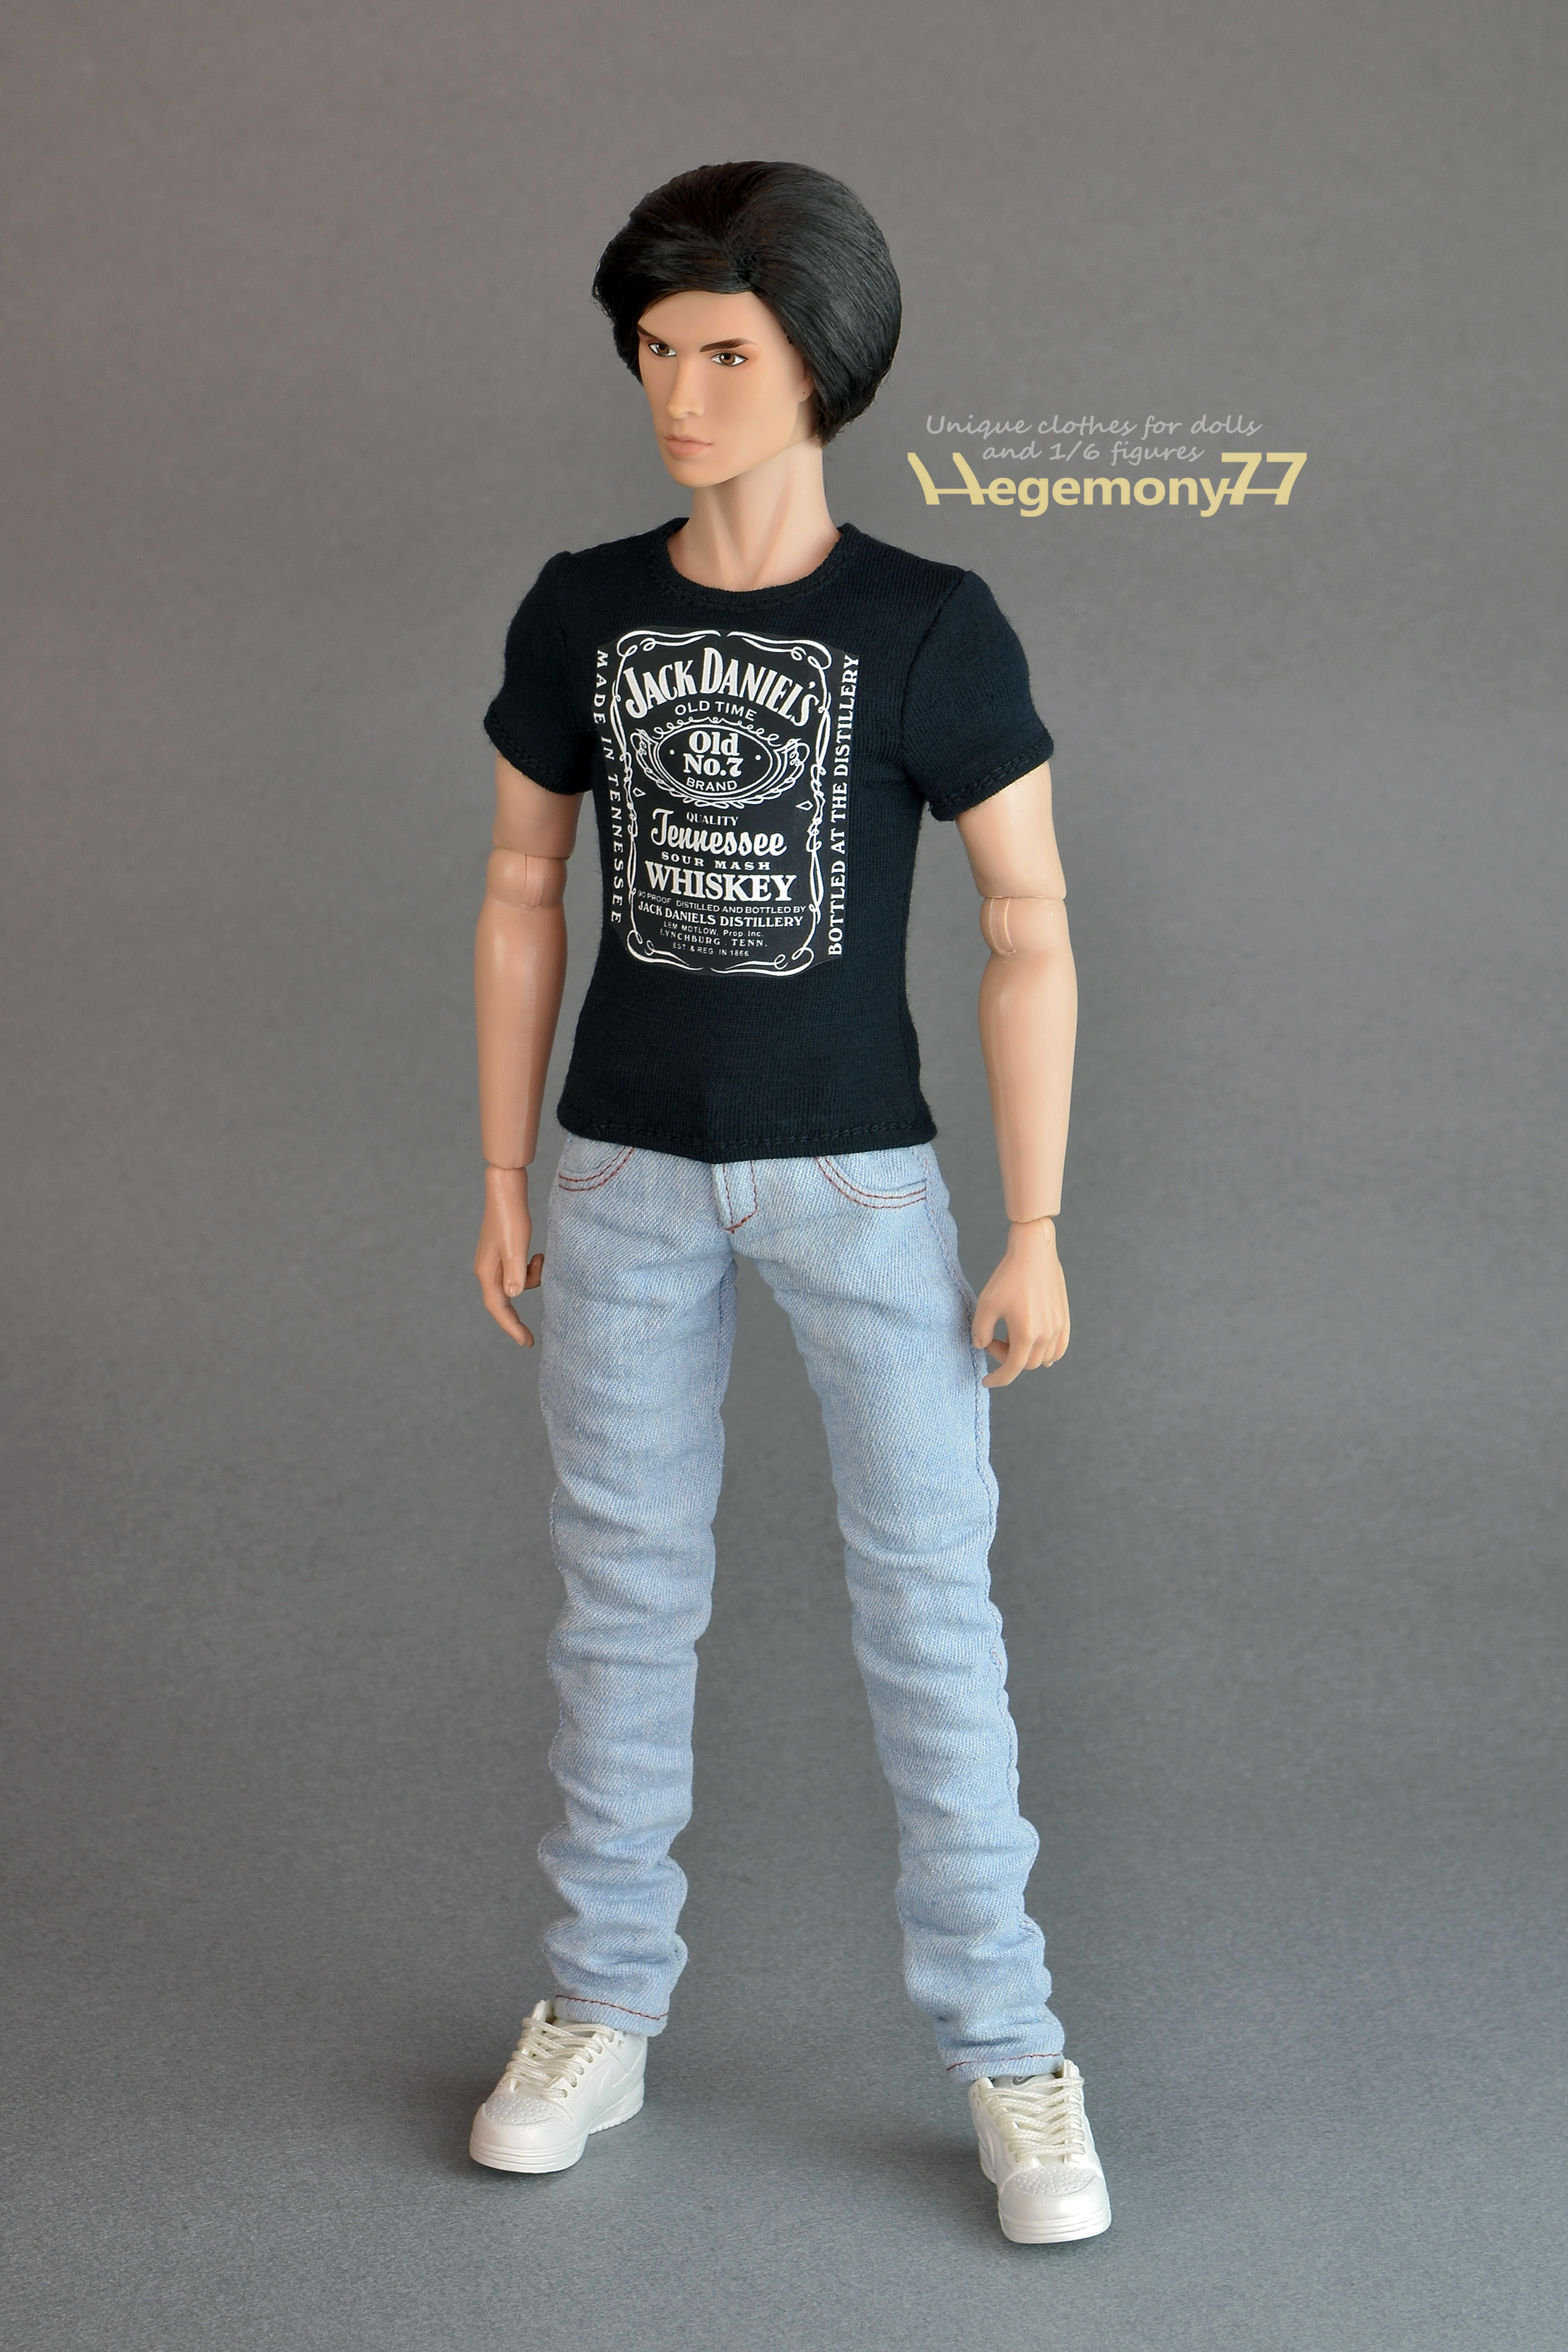 Black t shirt blue jeans - Black T Shirt Light Blue Jeans Fashion Royalty Homme Male Doll In Custom Made Black Download